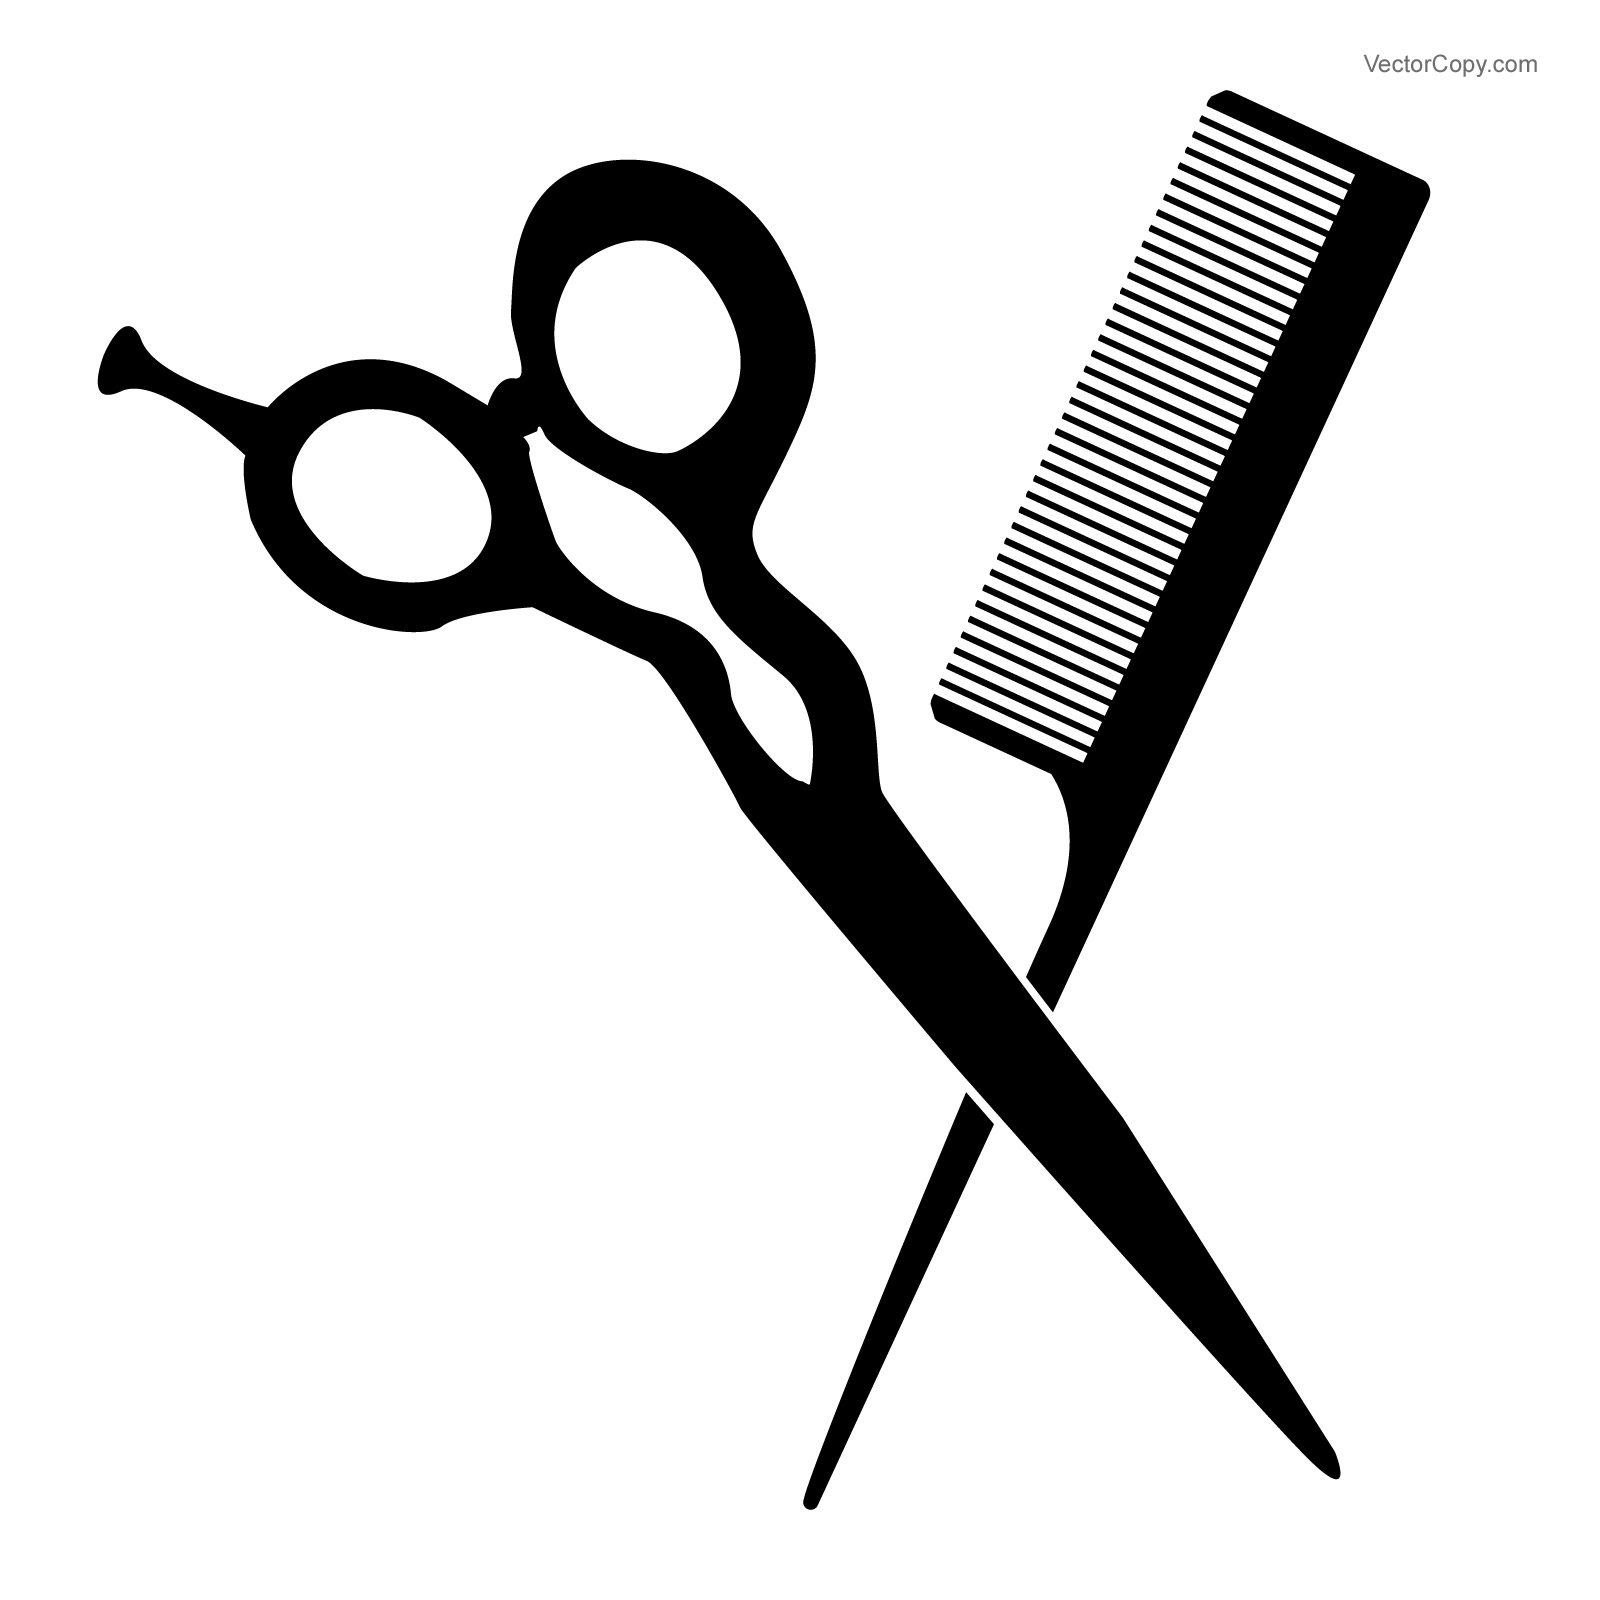 Clipart scissors comb. Silhouette at getdrawings com